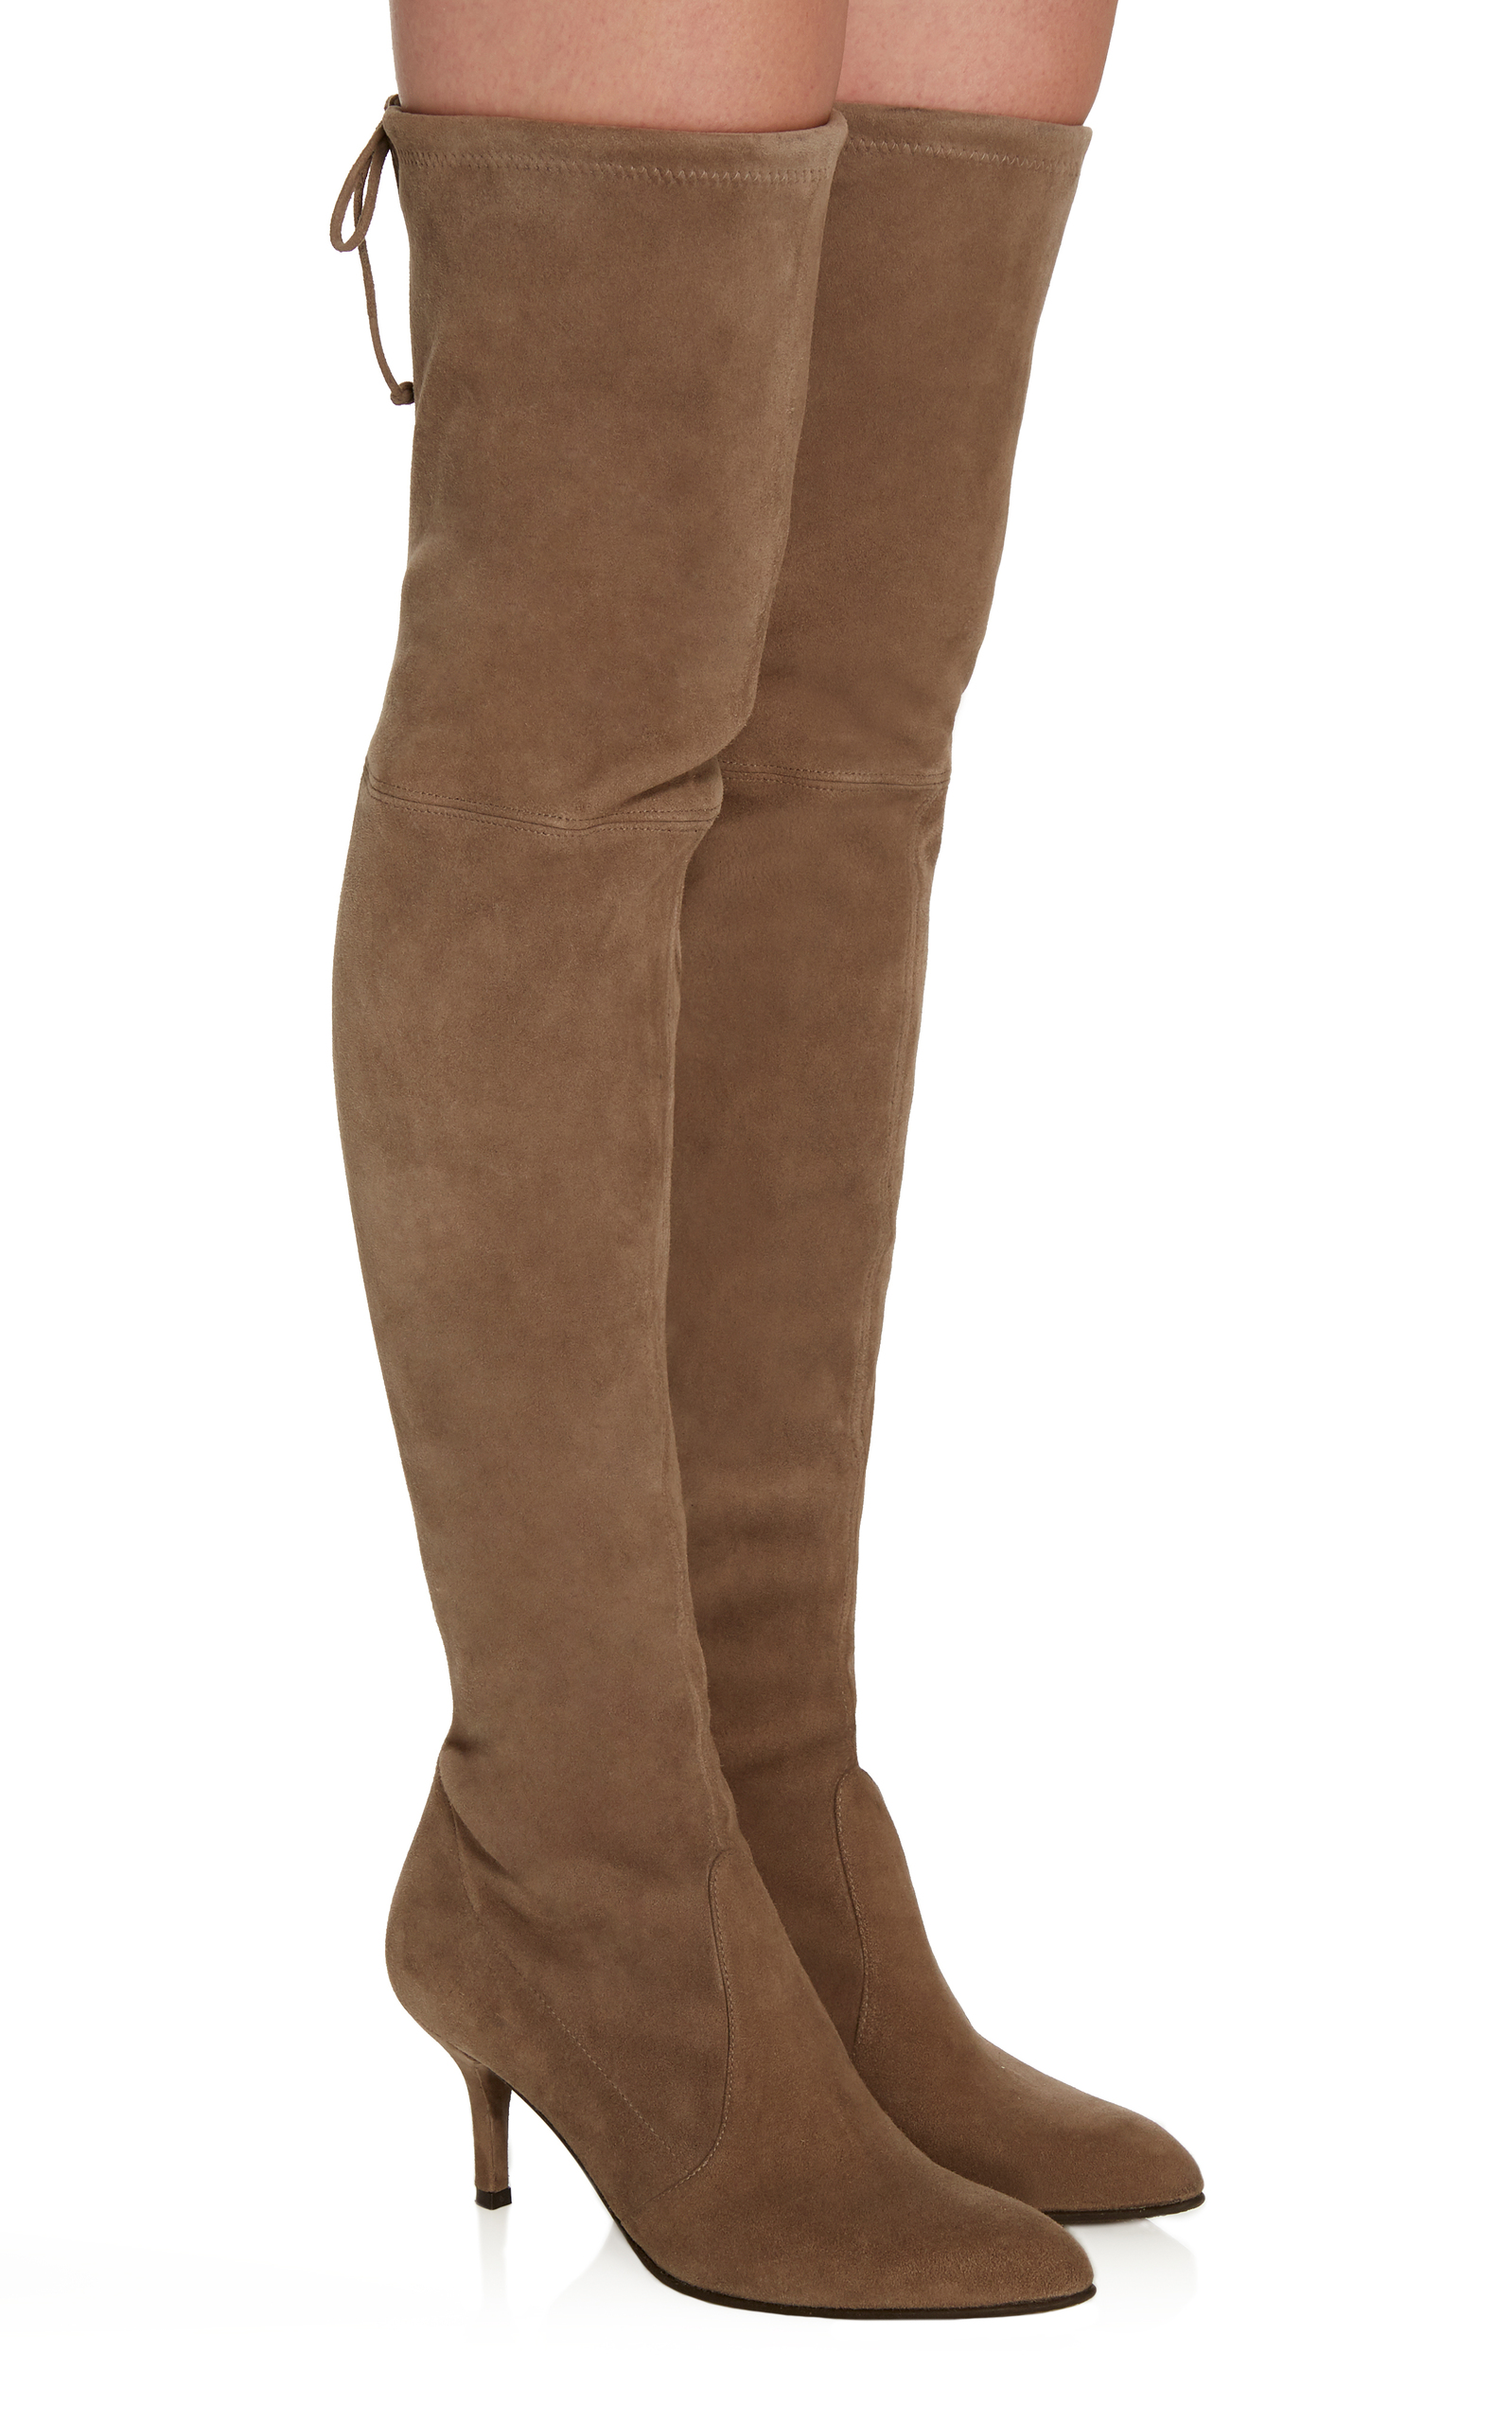 78930bc59dd Stuart WeitzmanTiemodel Over-the-Knee Suede Boots. CLOSE. Loading